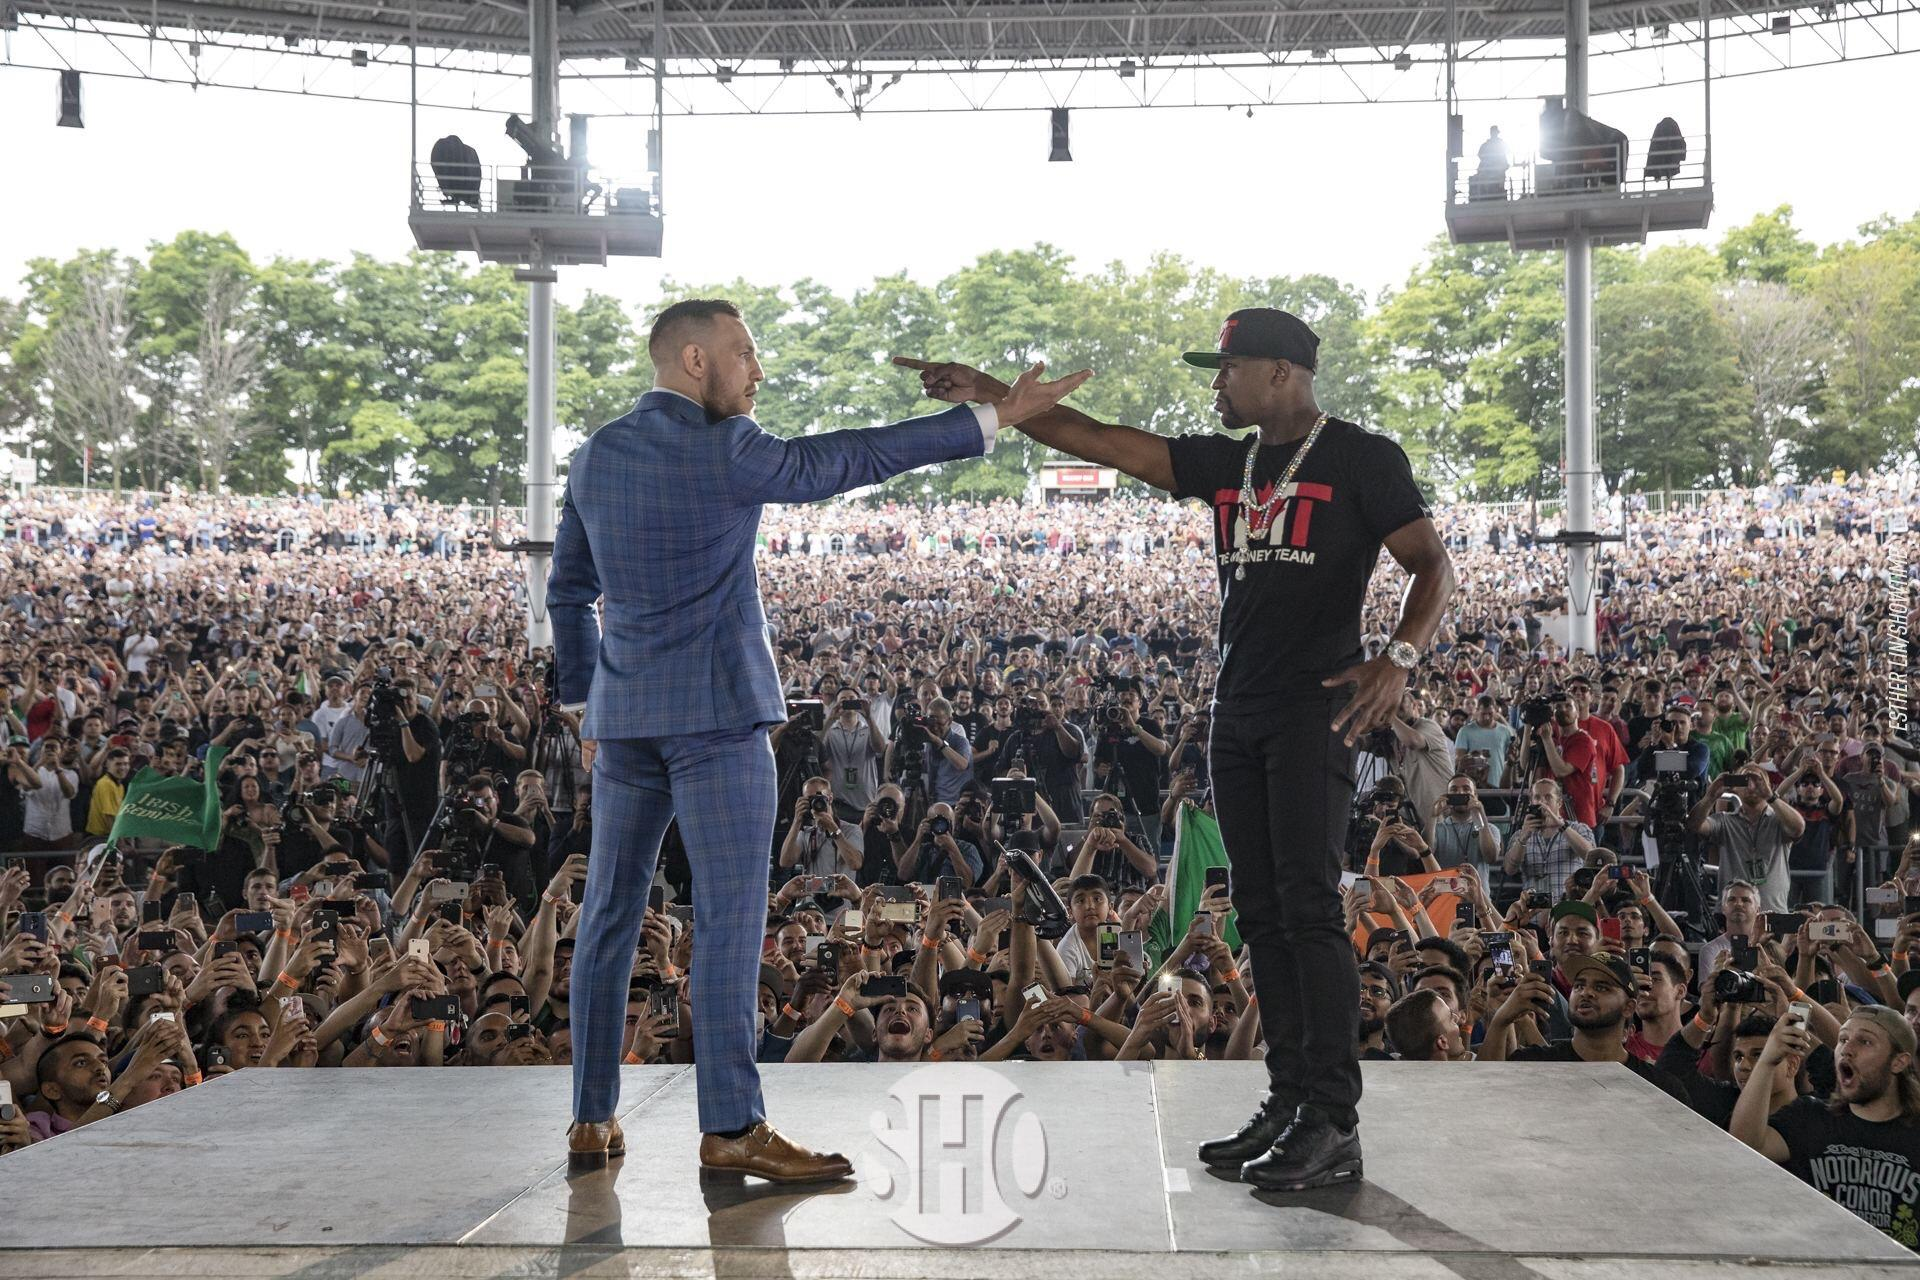 Conor McGregor and Floyd Mayweather come face to face.